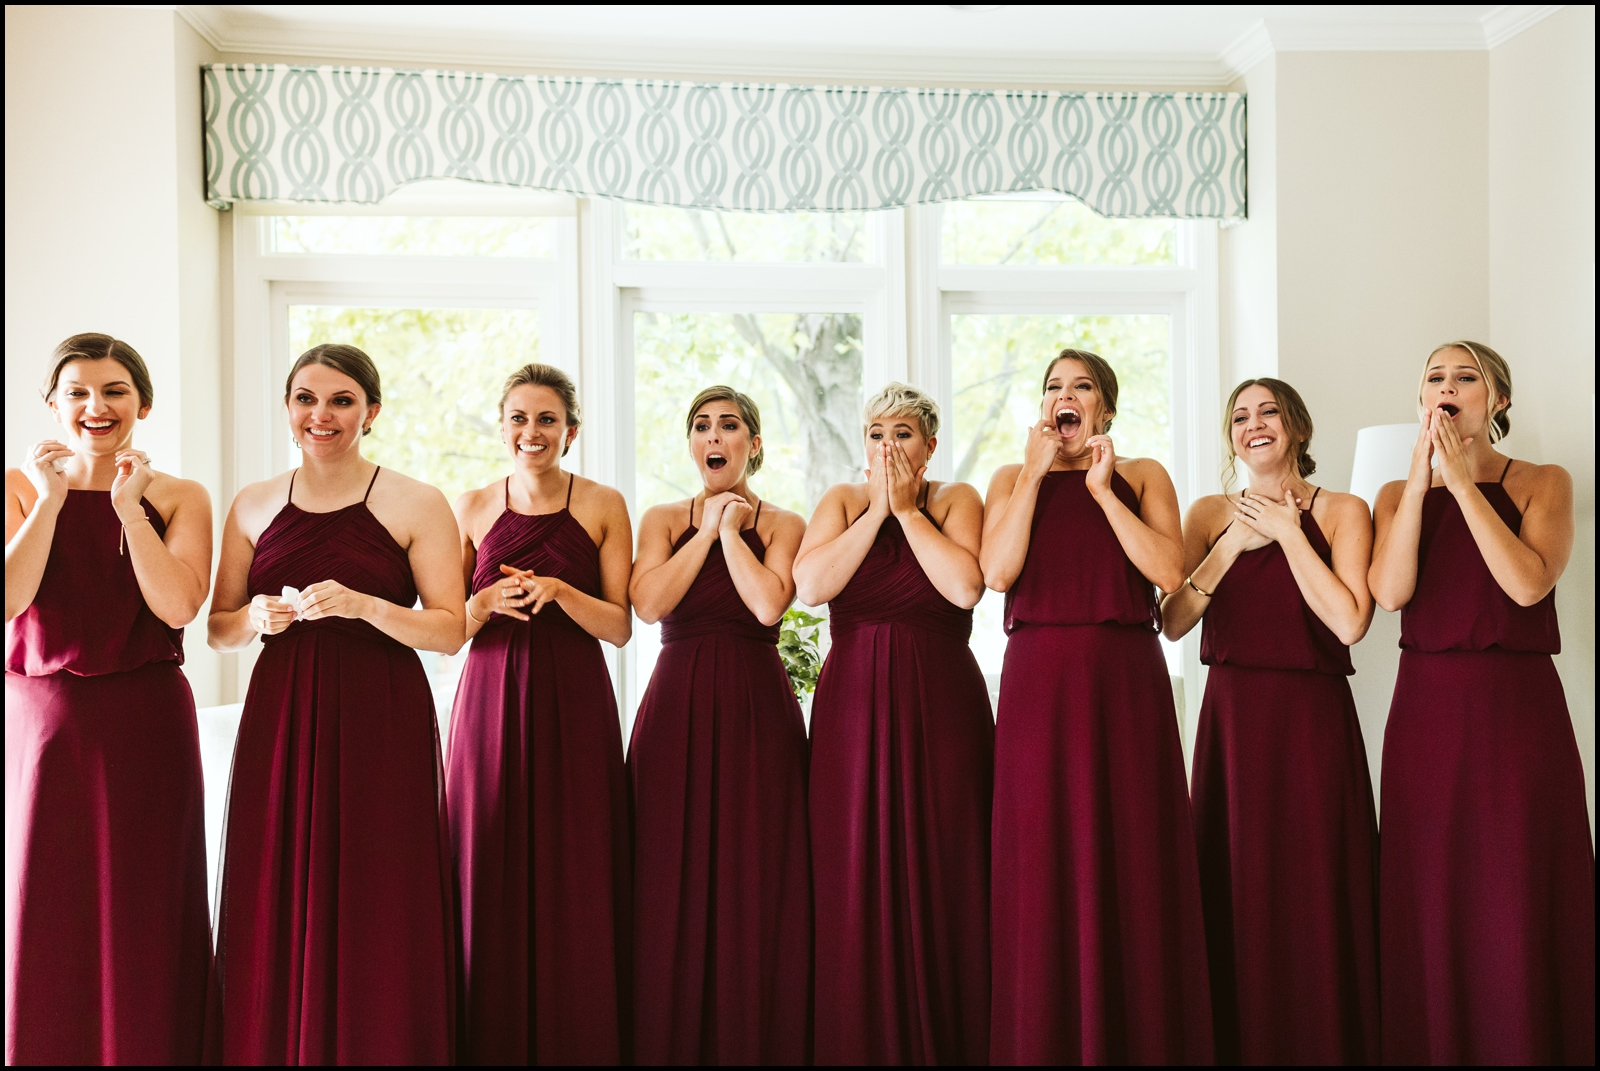 Bridesmaids waiting to see the bride